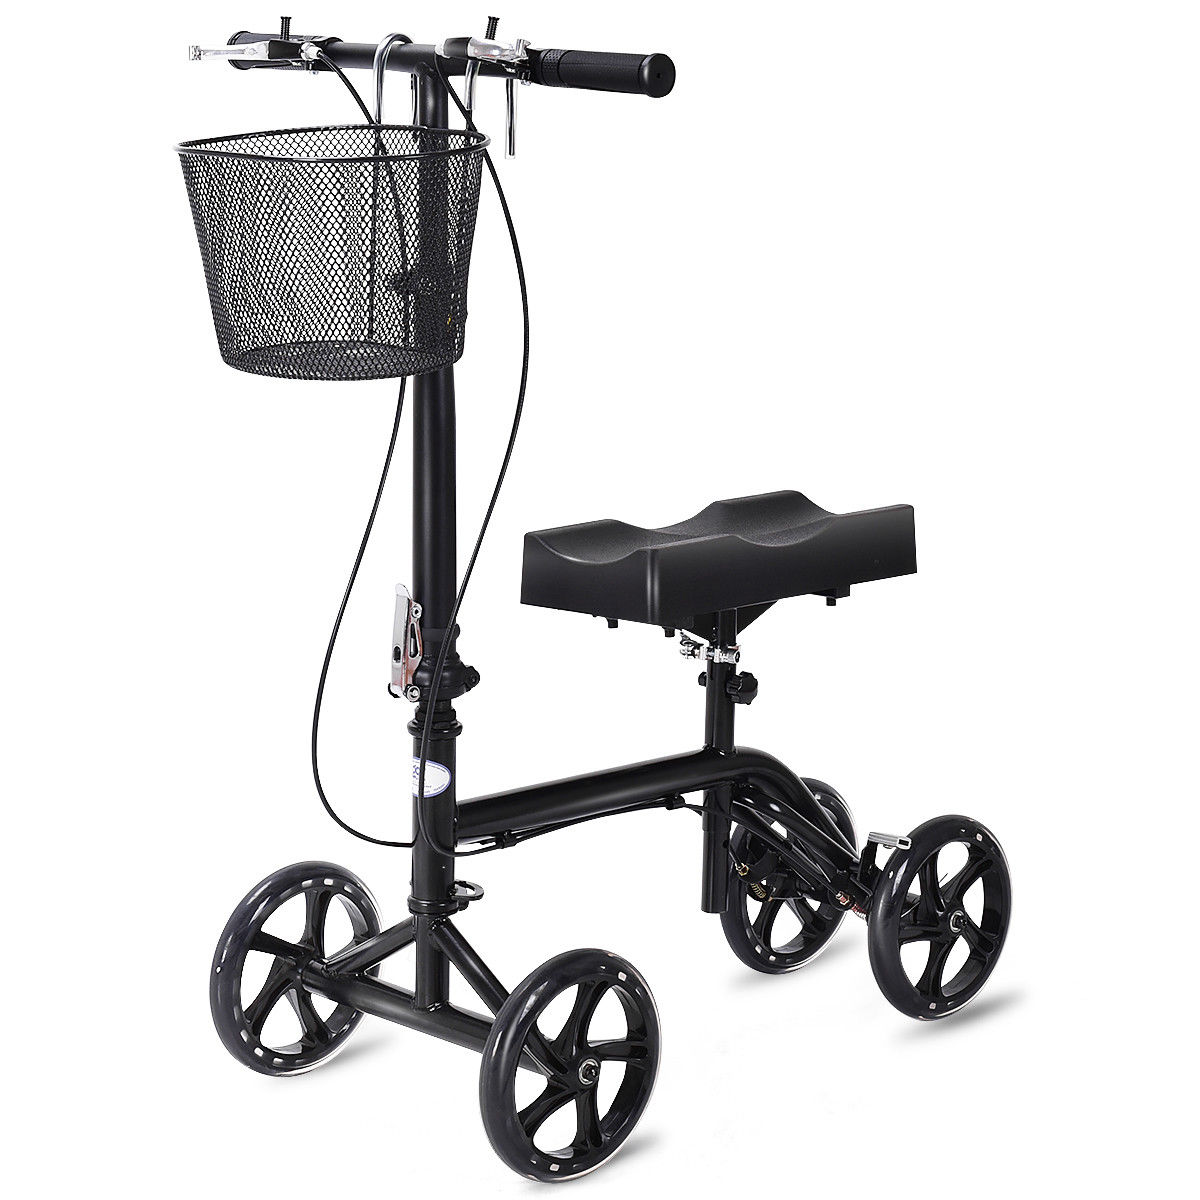 Costway Steerable Foldable Knee Walker Scooter Turning Brake Basket Drive Cart Black